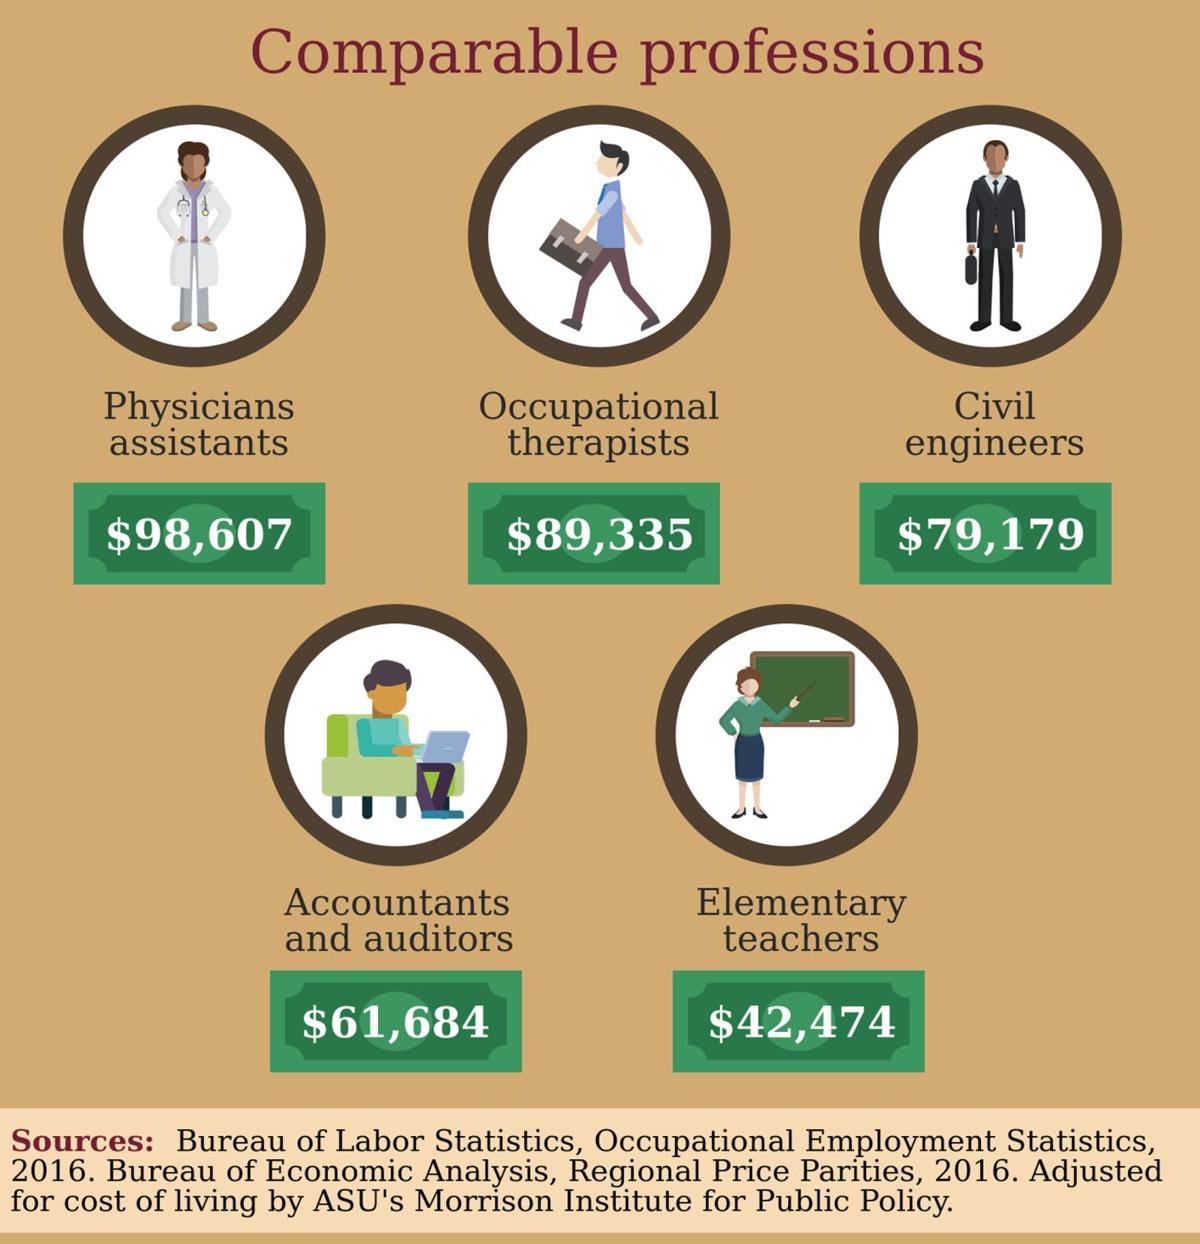 Comparable Professions